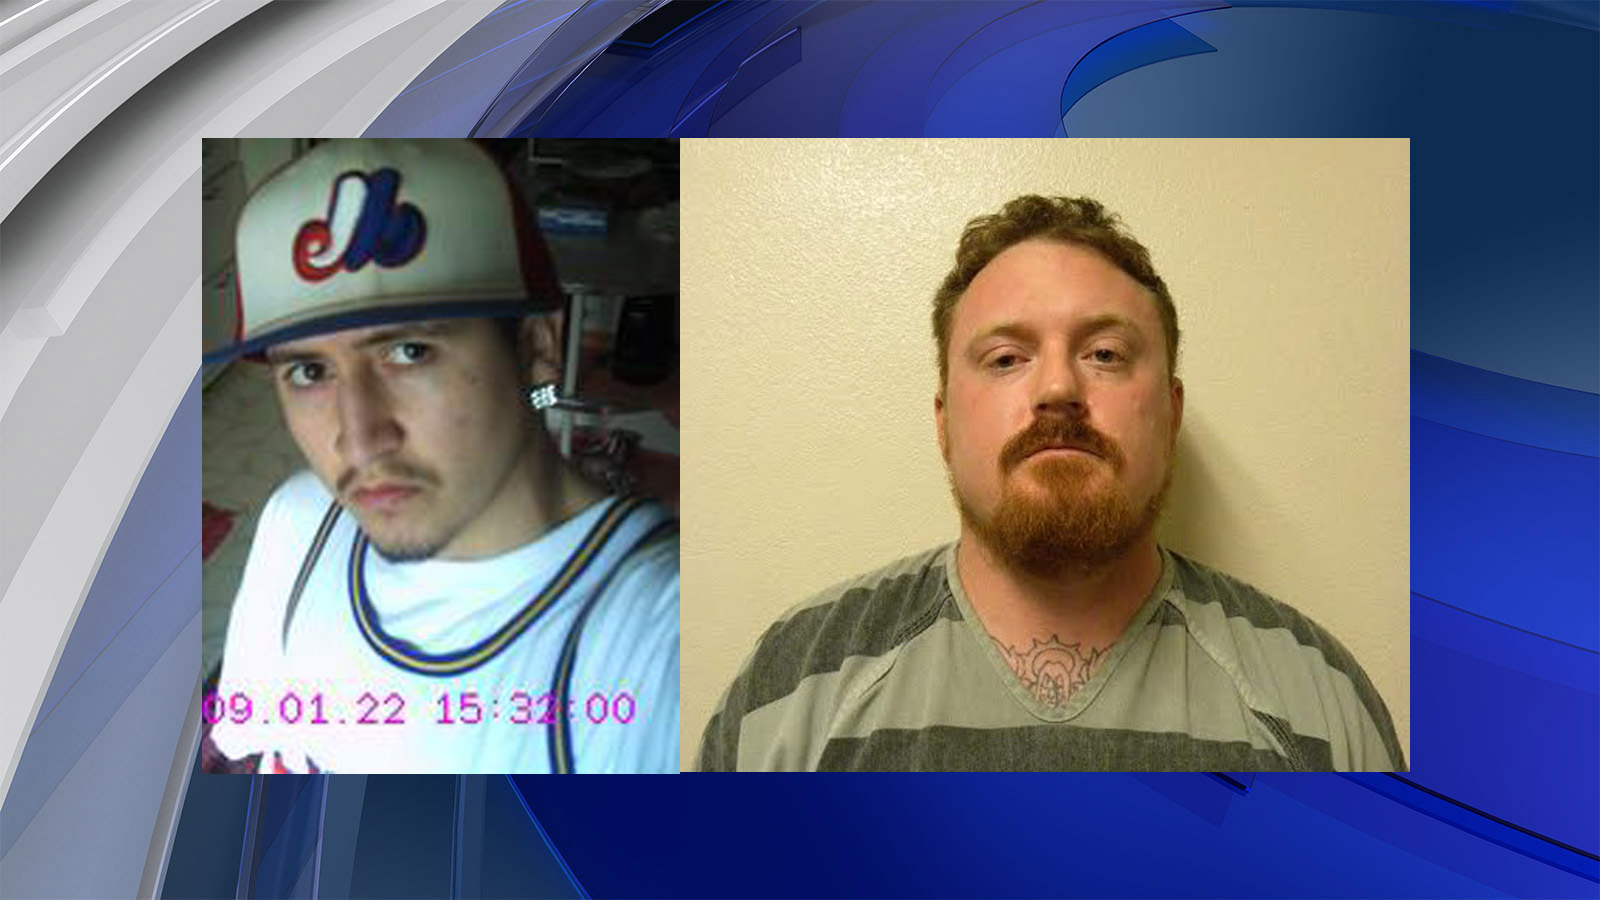 Jack Jacquez, left, and James Ashby, right (credit: CBS)